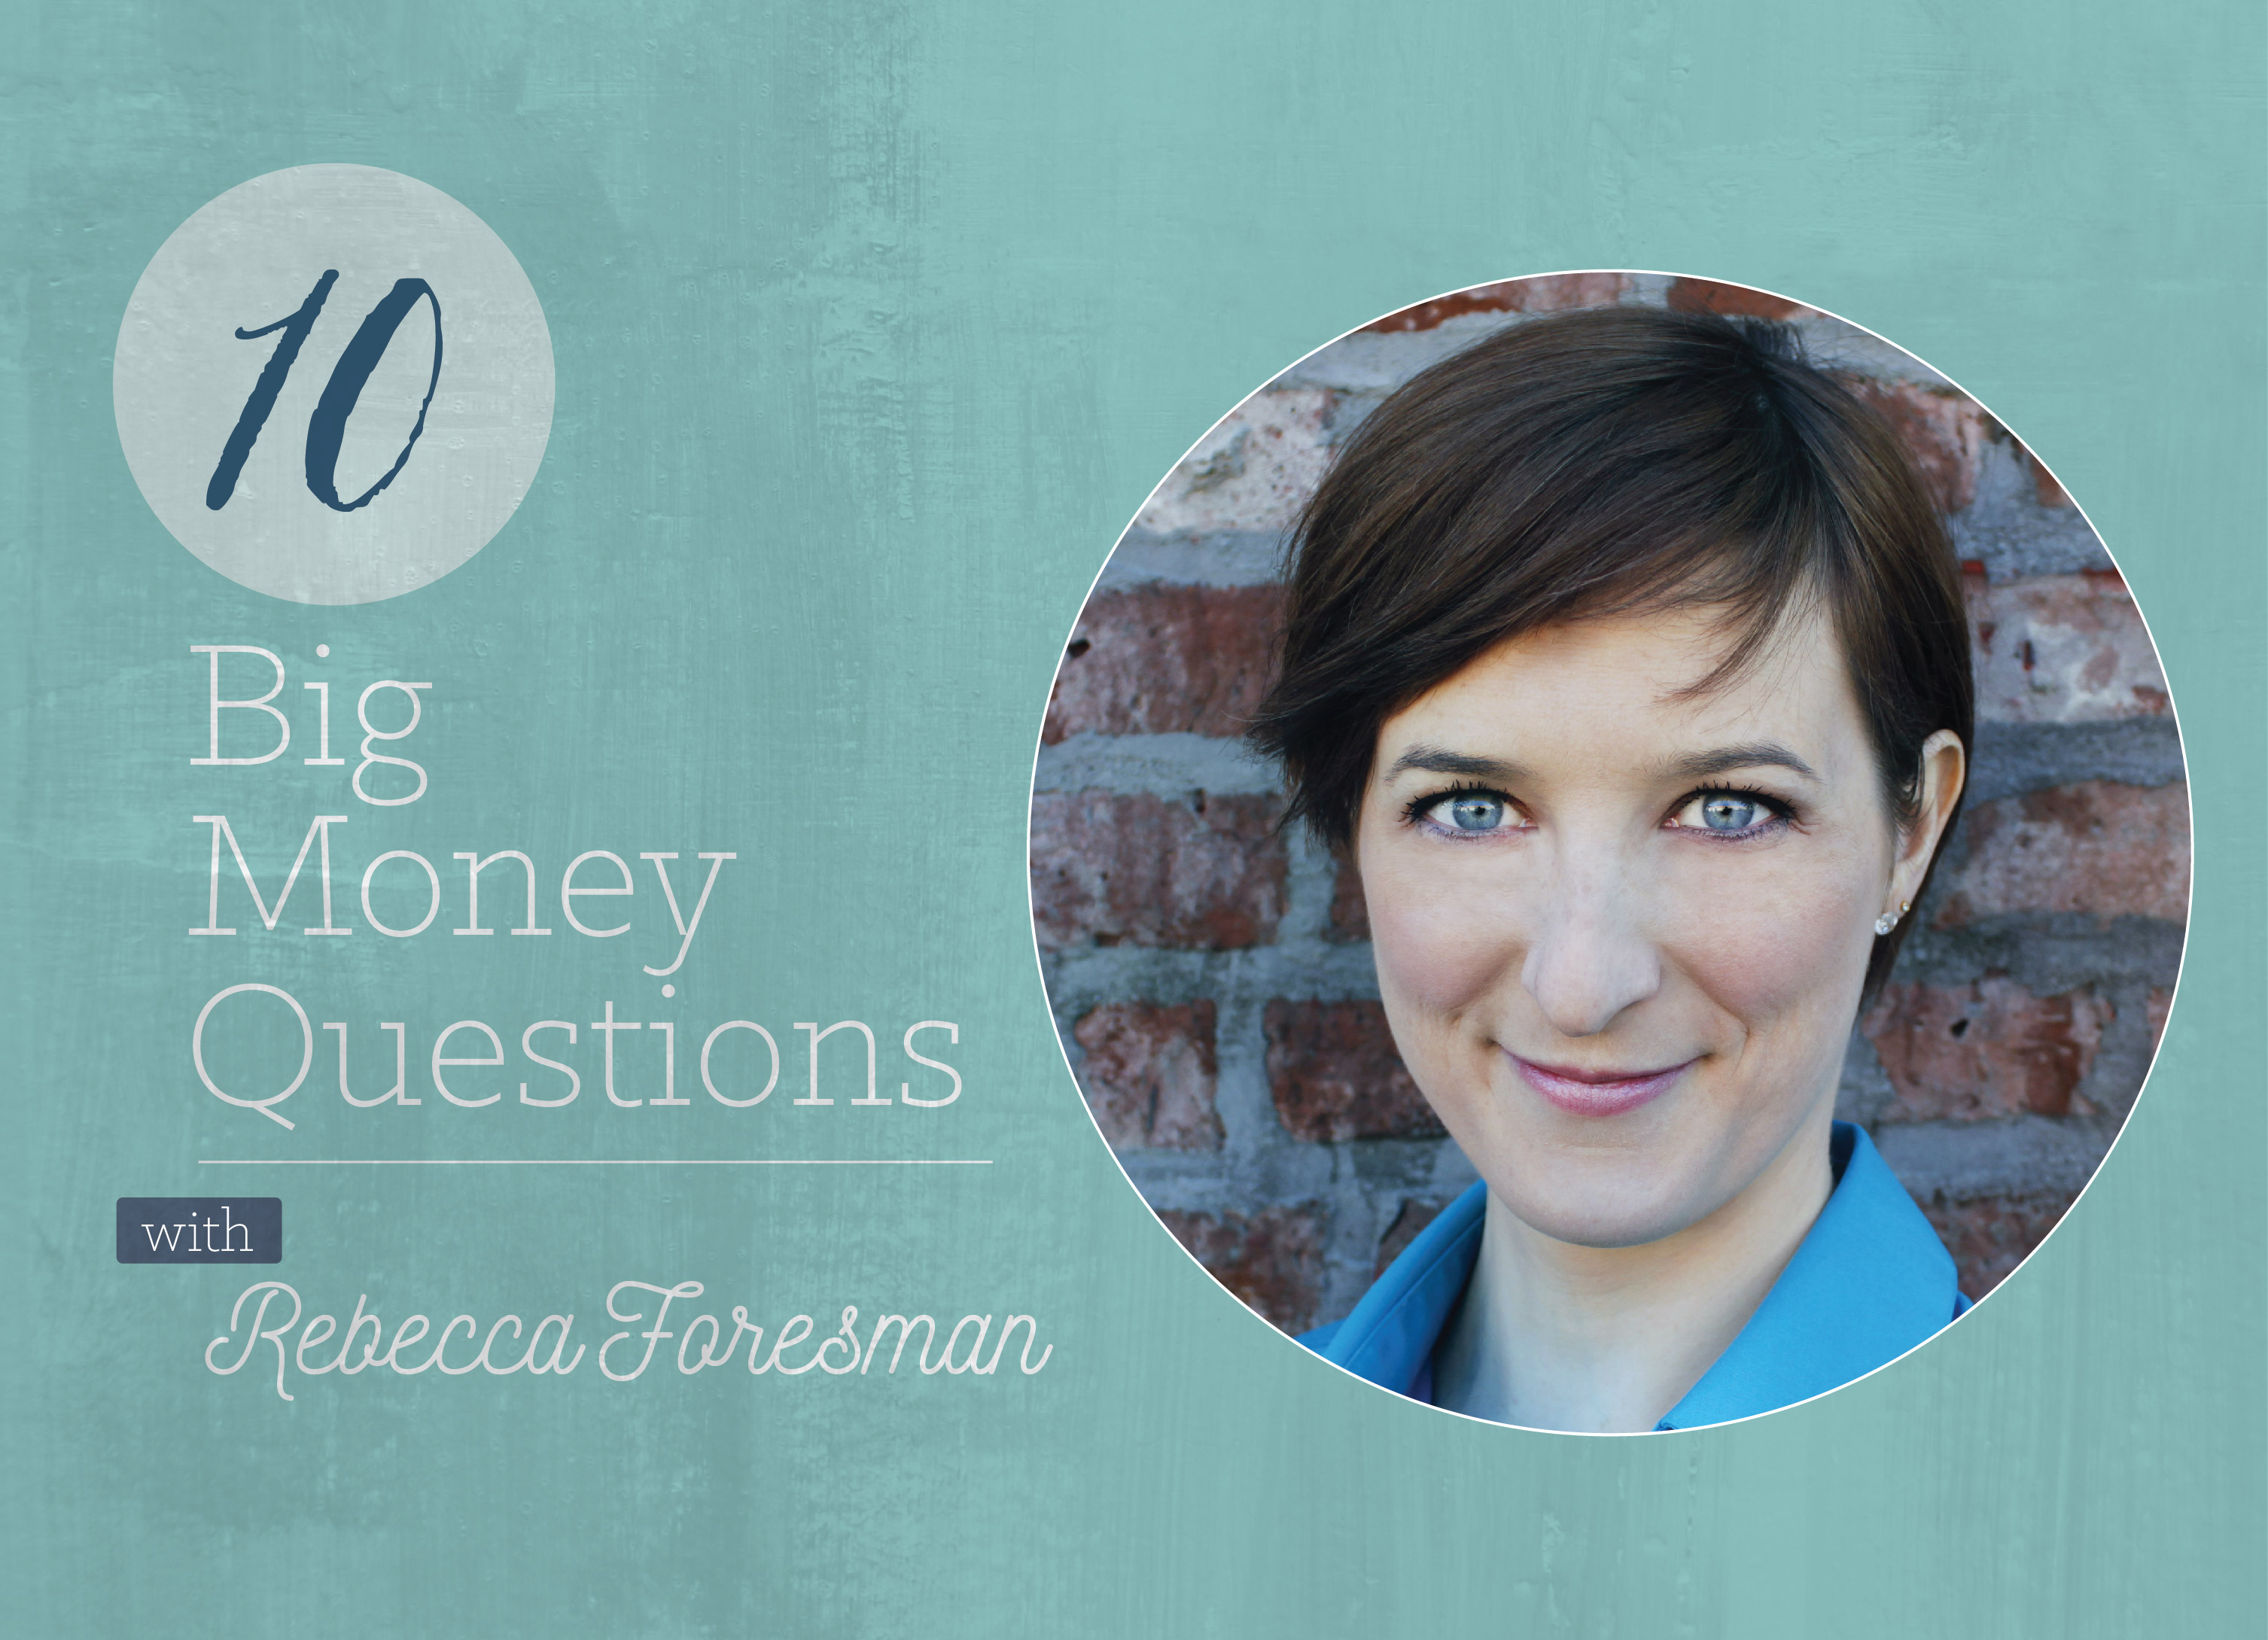 10 Big Money Questions - The Financial Diet